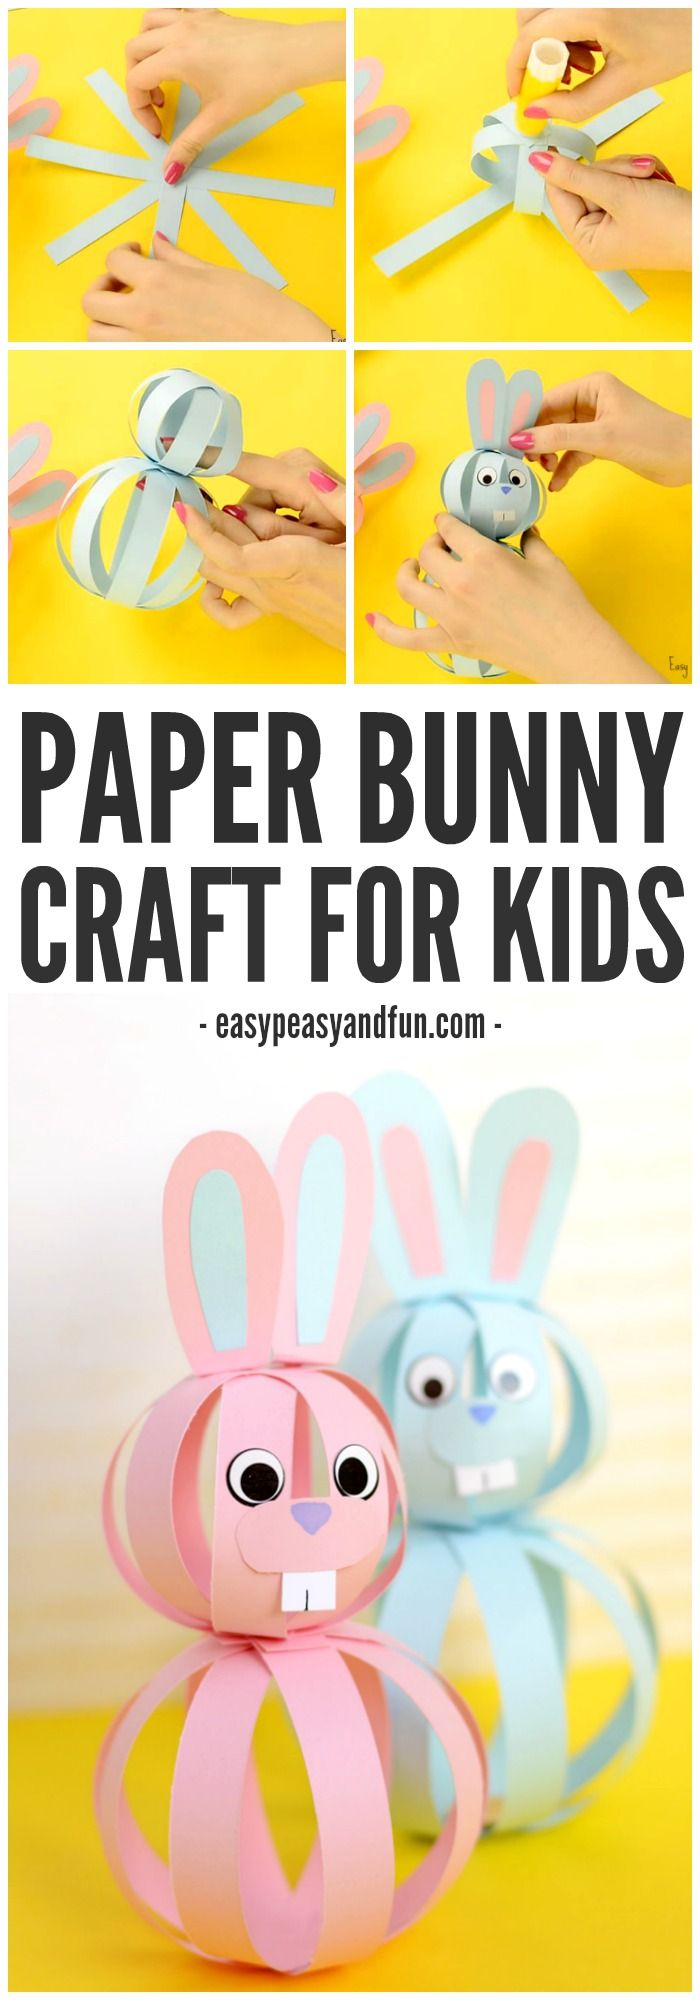 Easy Paper Bunny Craft Easter Idea For Kids Fun Diy Pinterest